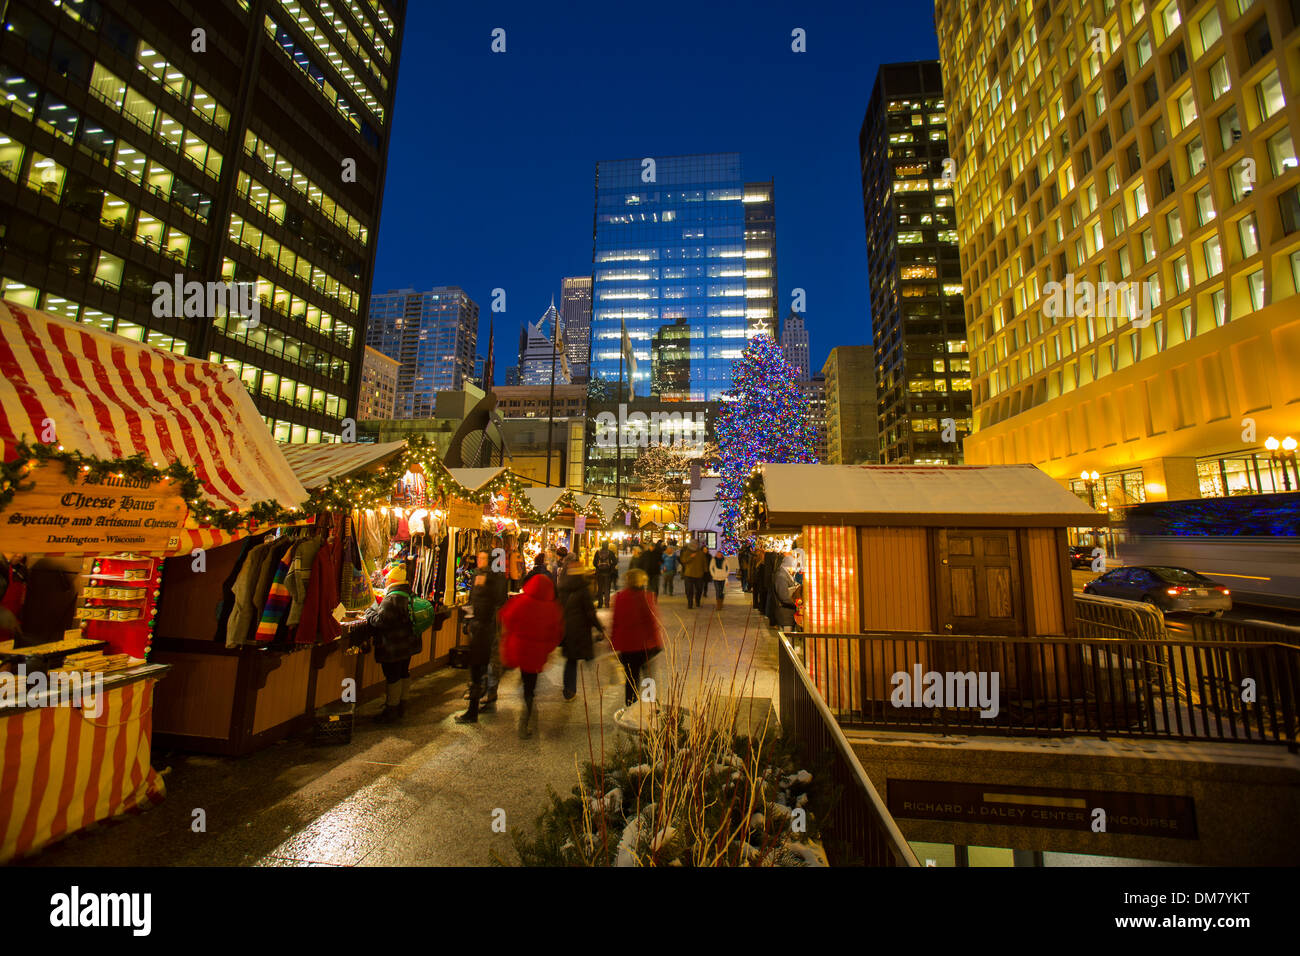 shoppers at chicago german christkindlmarket winter festival open air outdoor holiday season market loop german